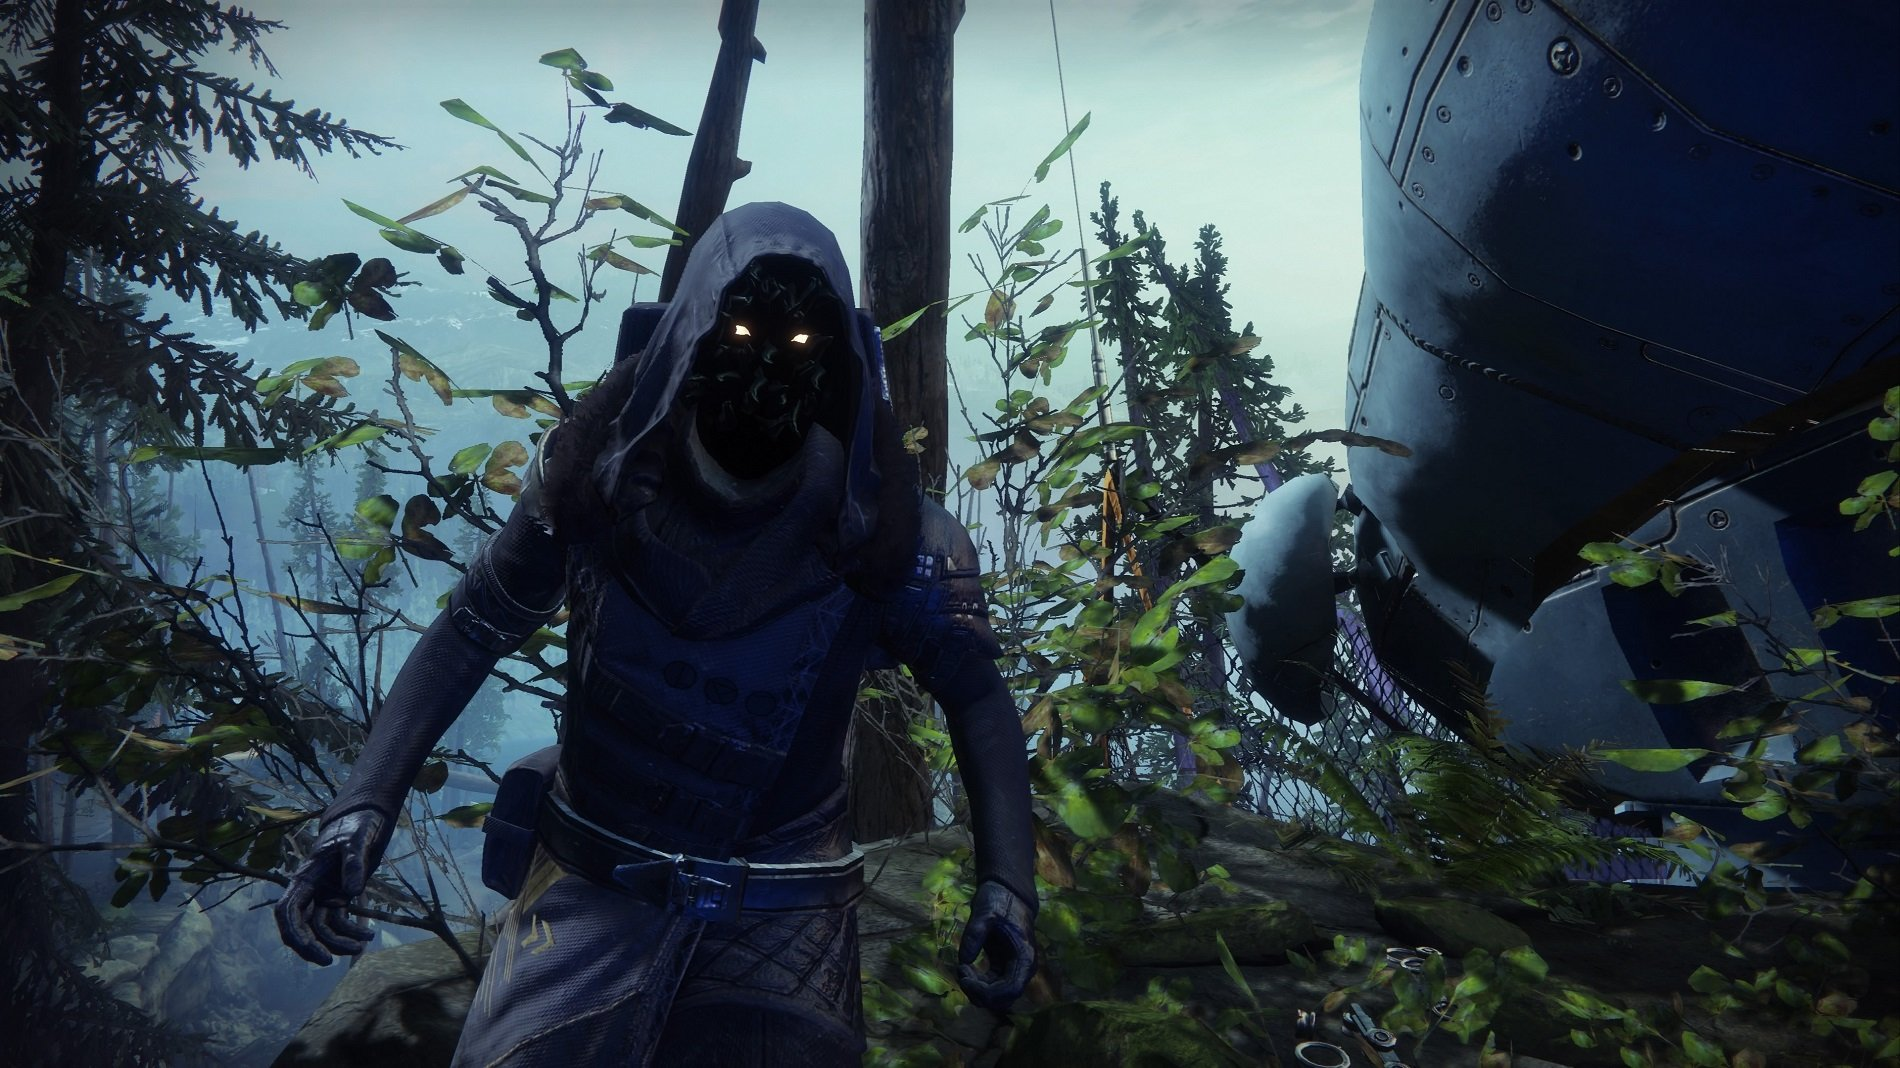 Where to find Xur in Destiny 2 - November 22, 2019